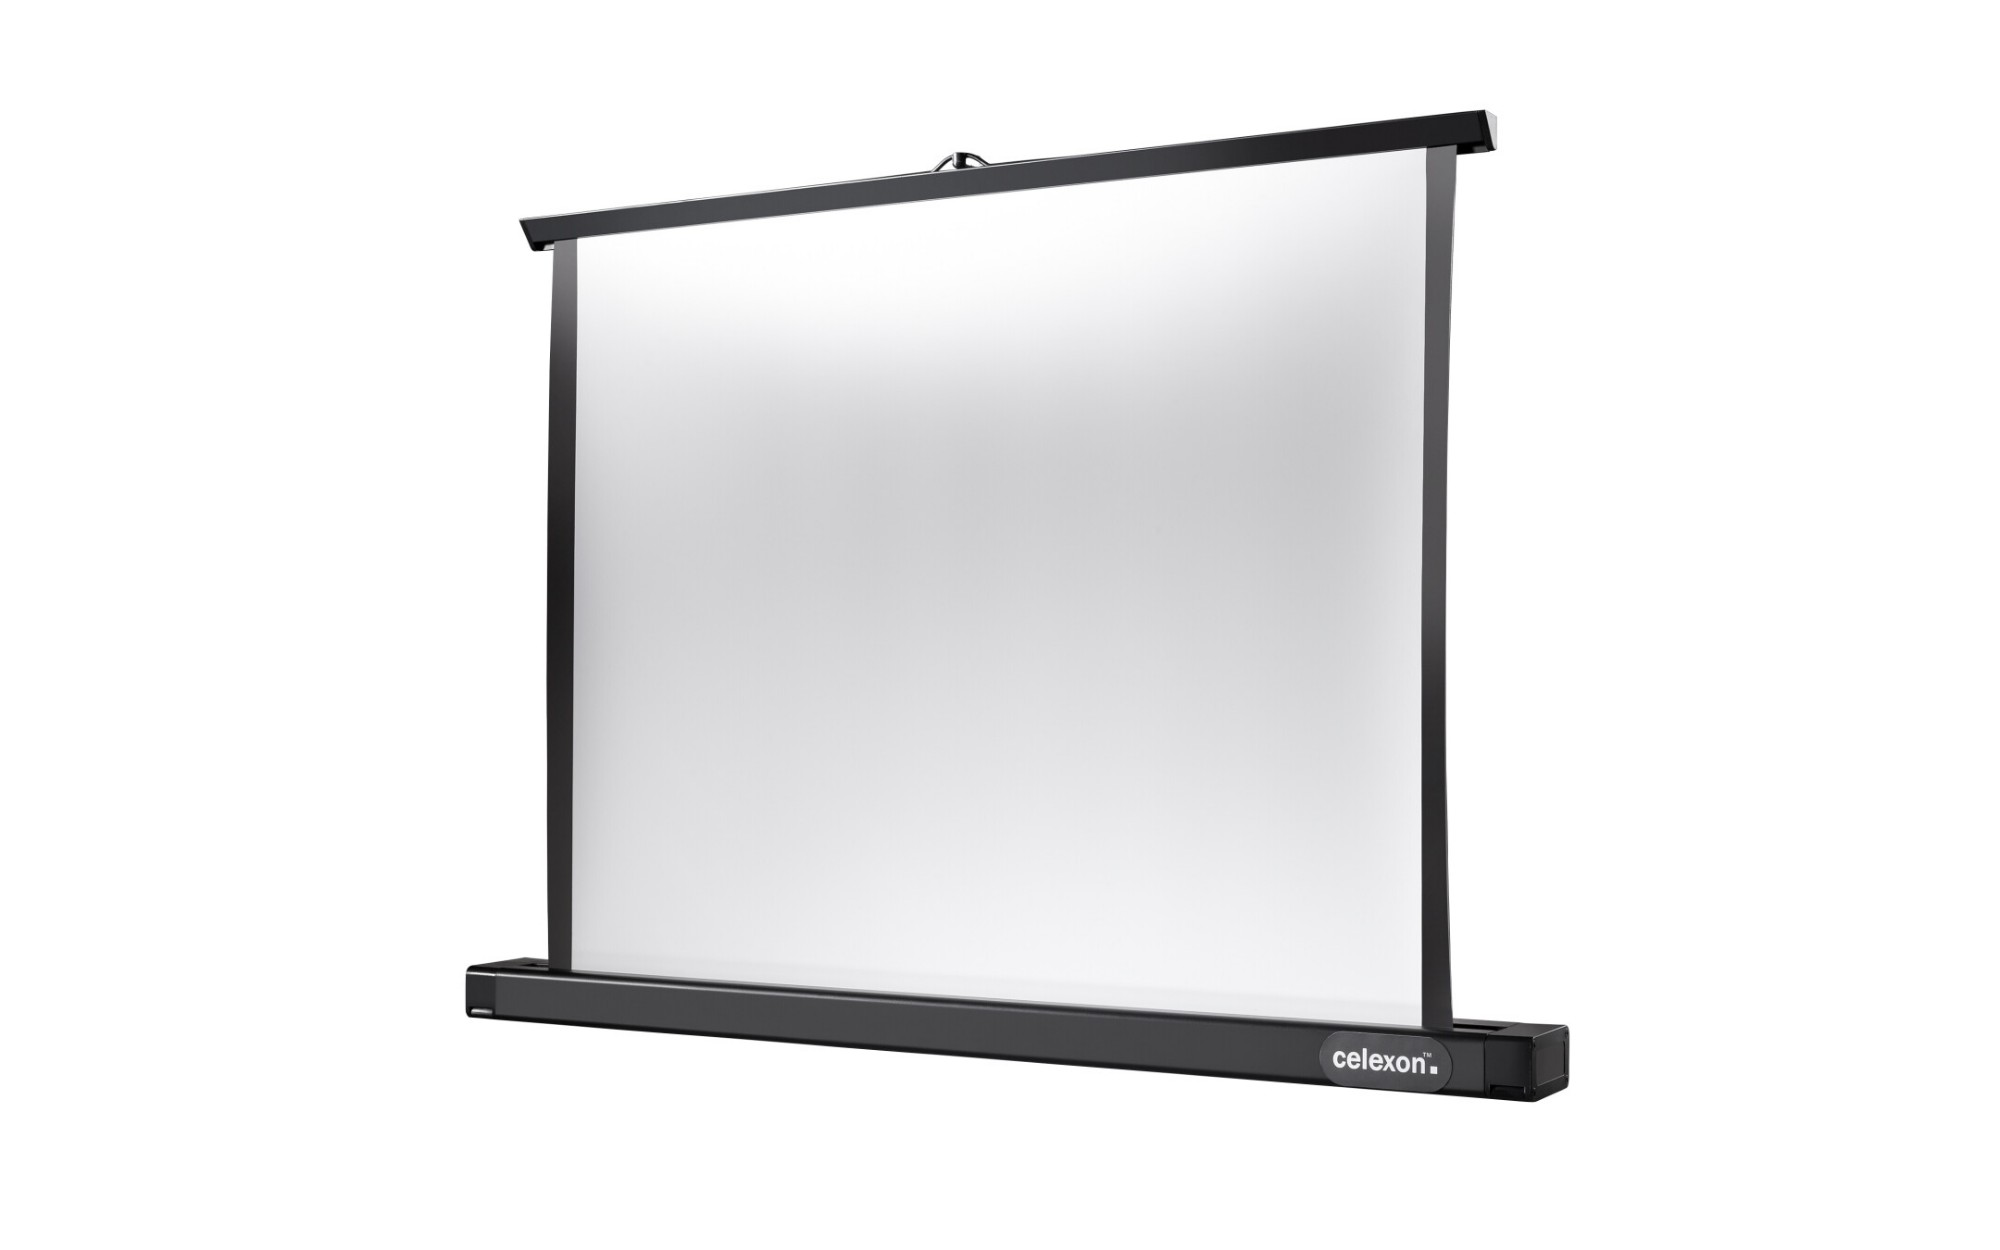 Celexon - Table Top Professional -  61cm x 46cm - Super Portable Projector Screen